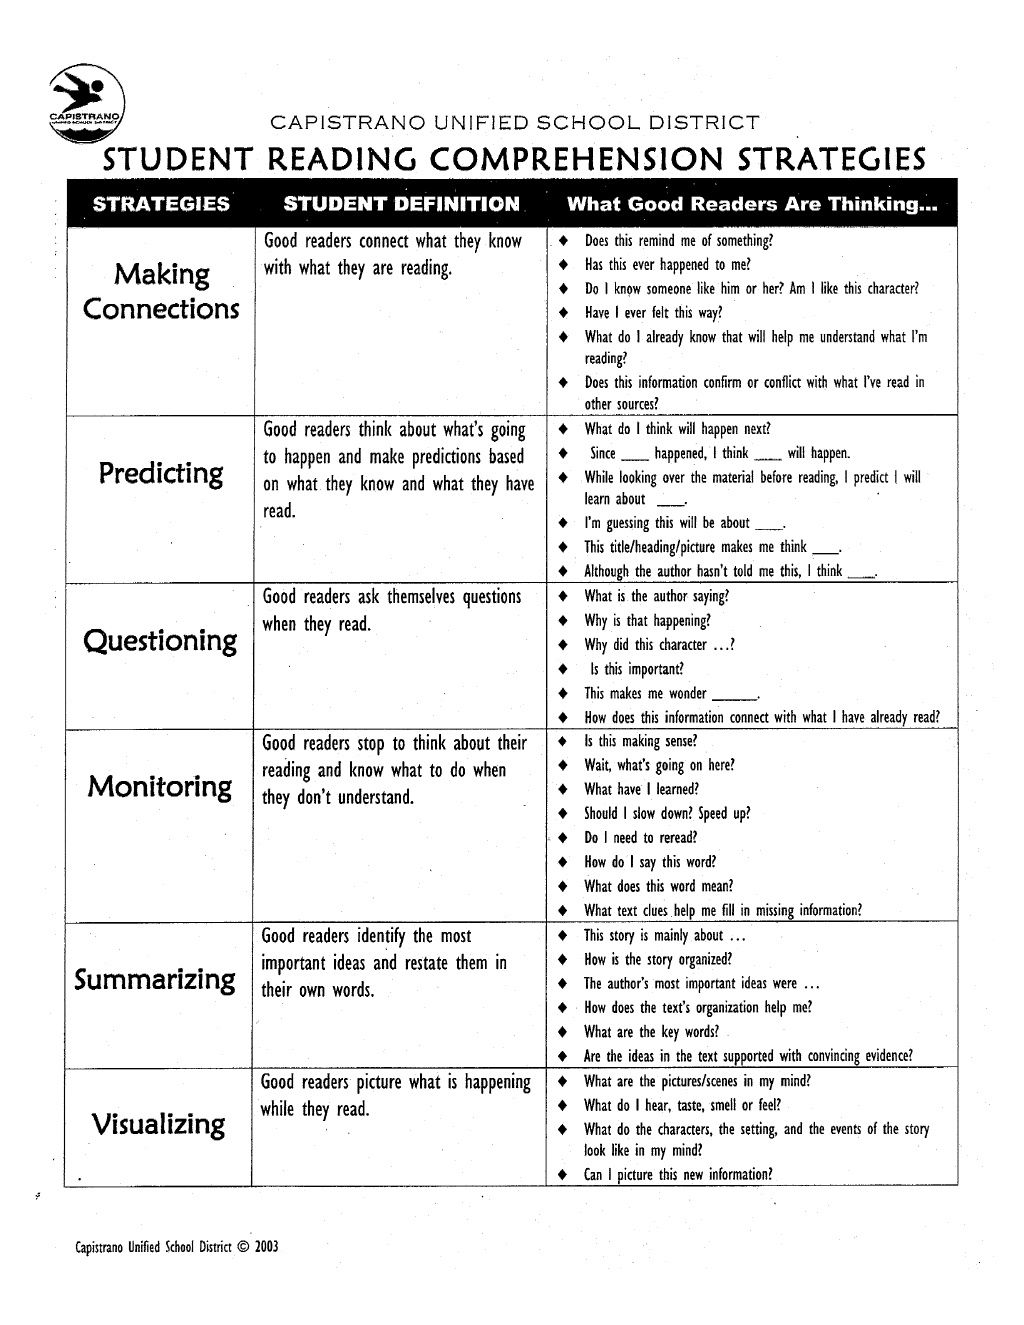 Reading Comprehension Strategies List By Andrea Hnatiuk Via Slideshare